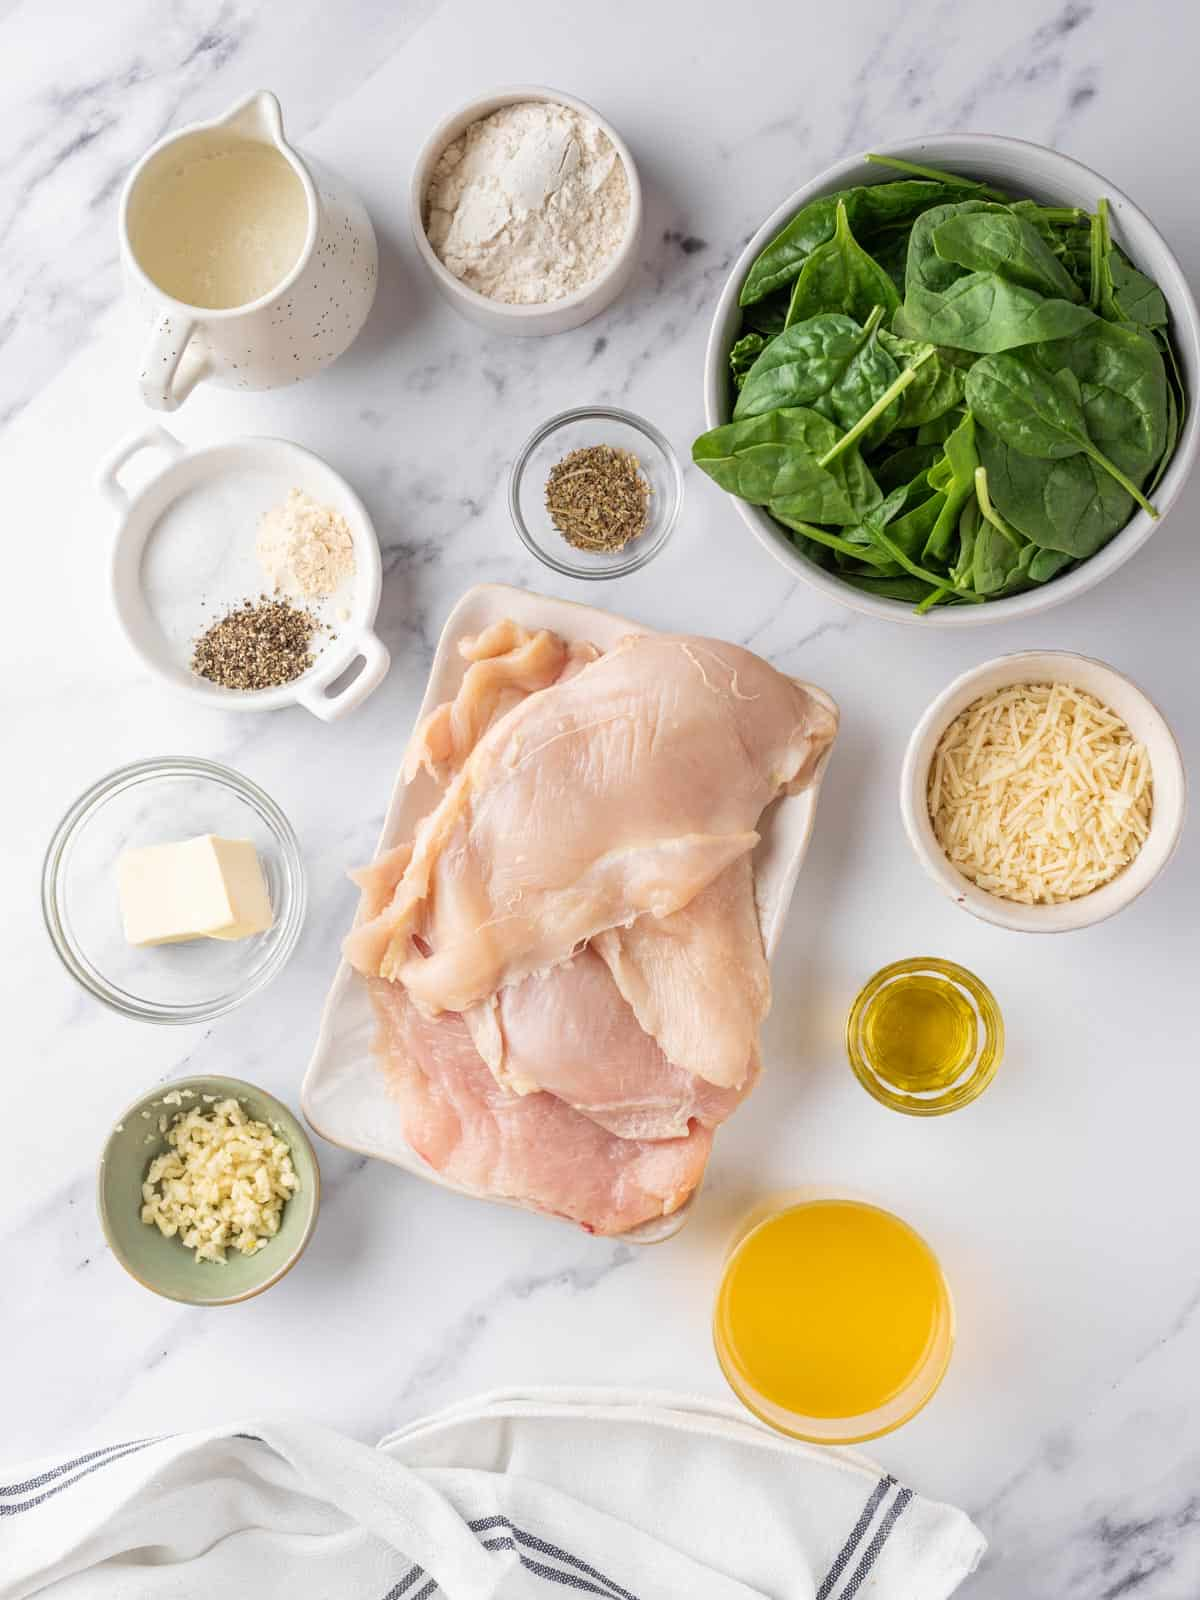 ingredients of the creamy chicken florentine laid out